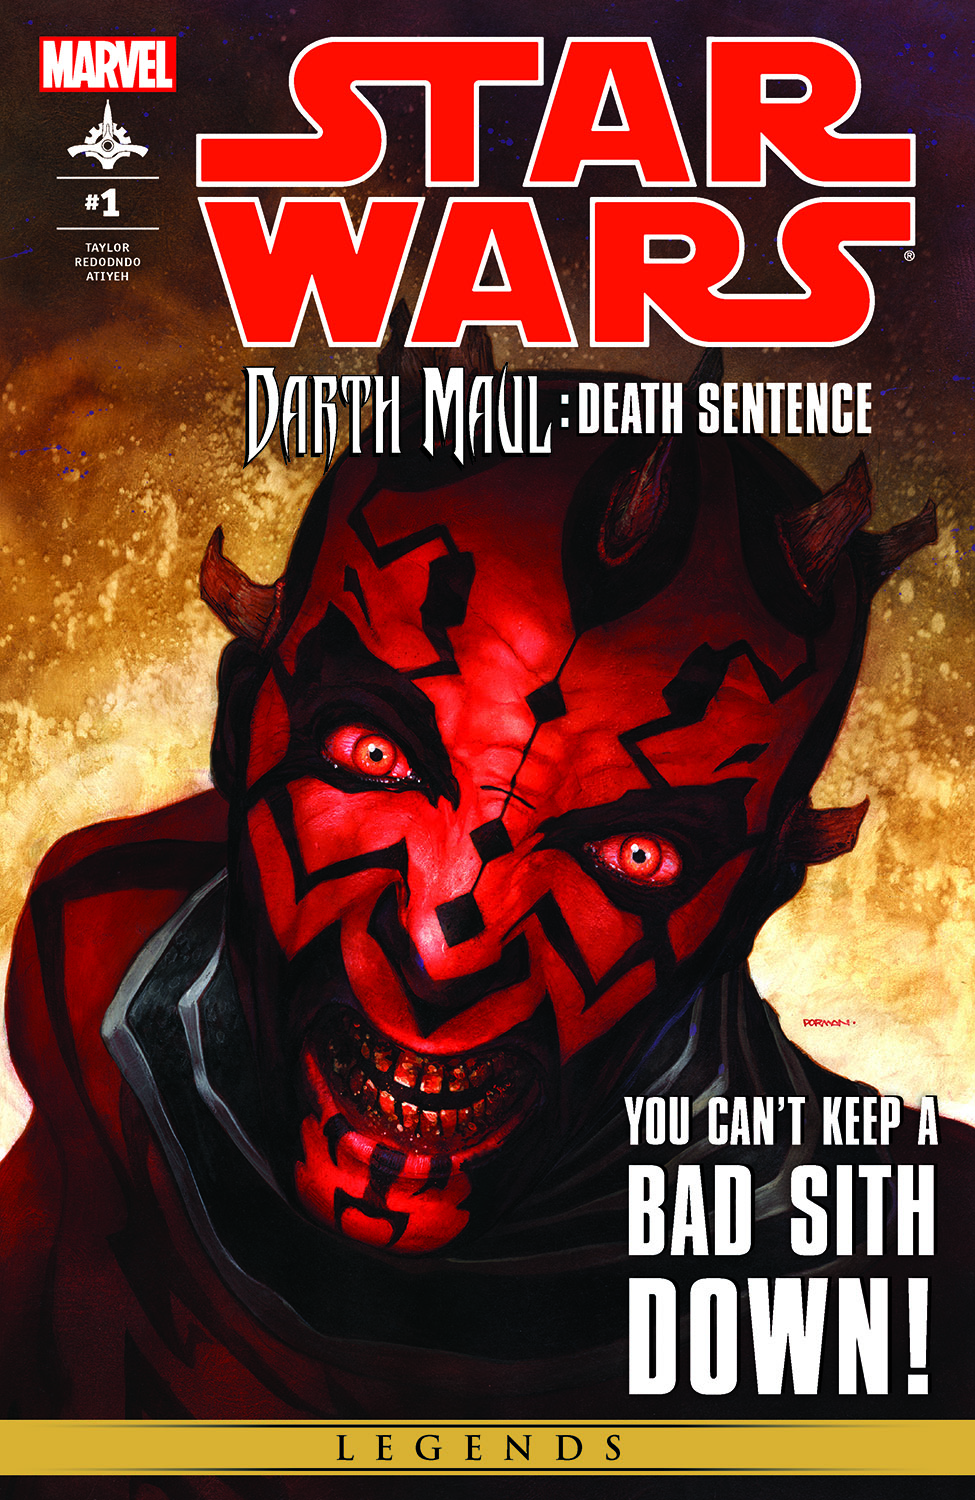 Star Wars: Darth Maul - Death Sentence (2012) #1